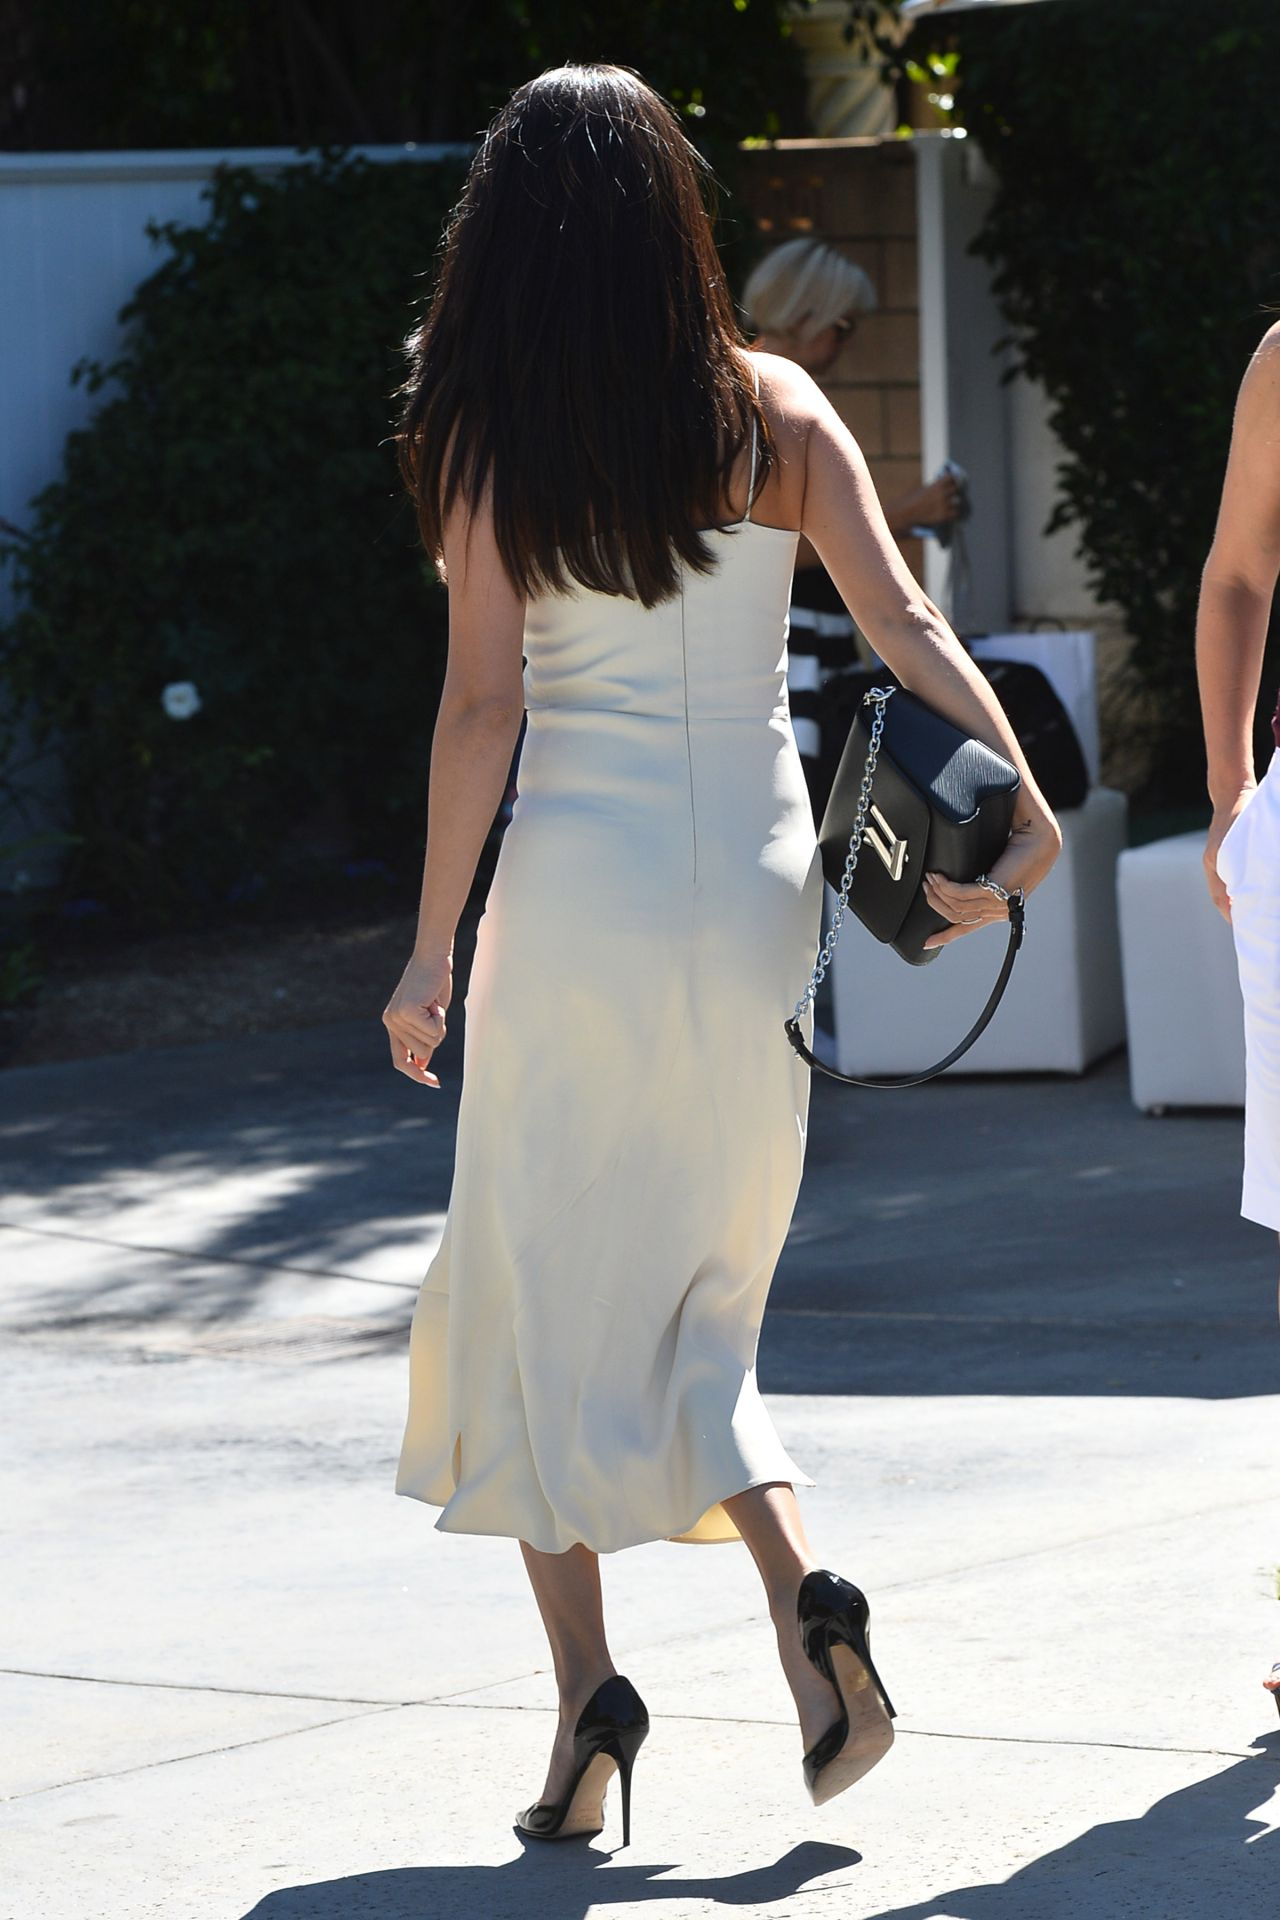 selena-gomez-style-arriving-to-jennifer-klein-s-day-of-indulgence-summer-party-in-brentwood_2